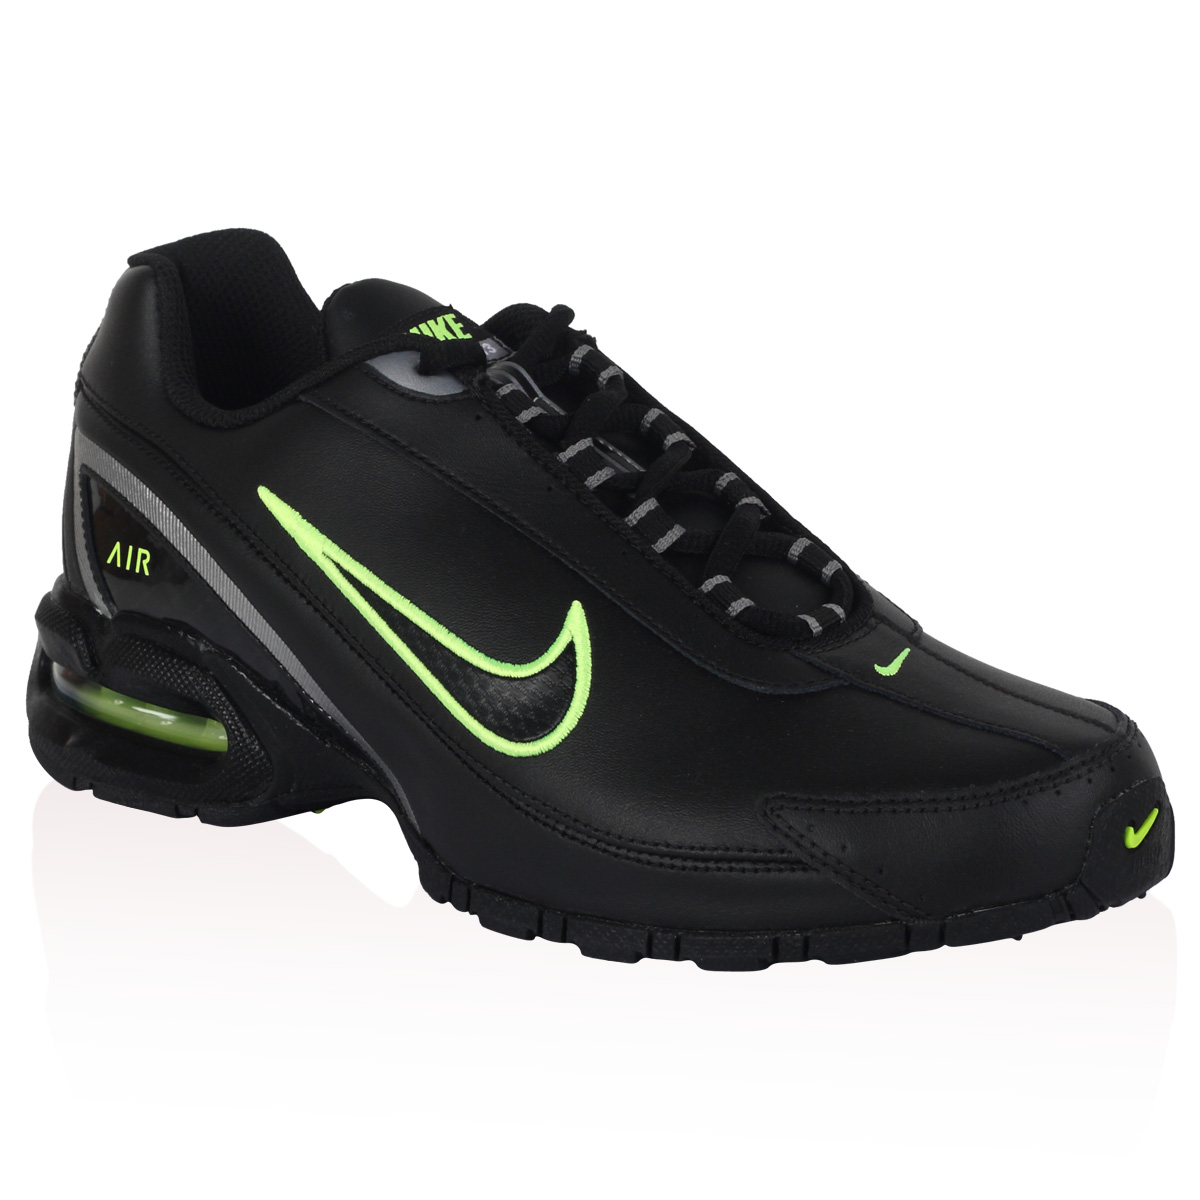 torch men Free shipping on select nike air max torch 3 online shop our premium selection of nike air max torch 3 online now for great prices.